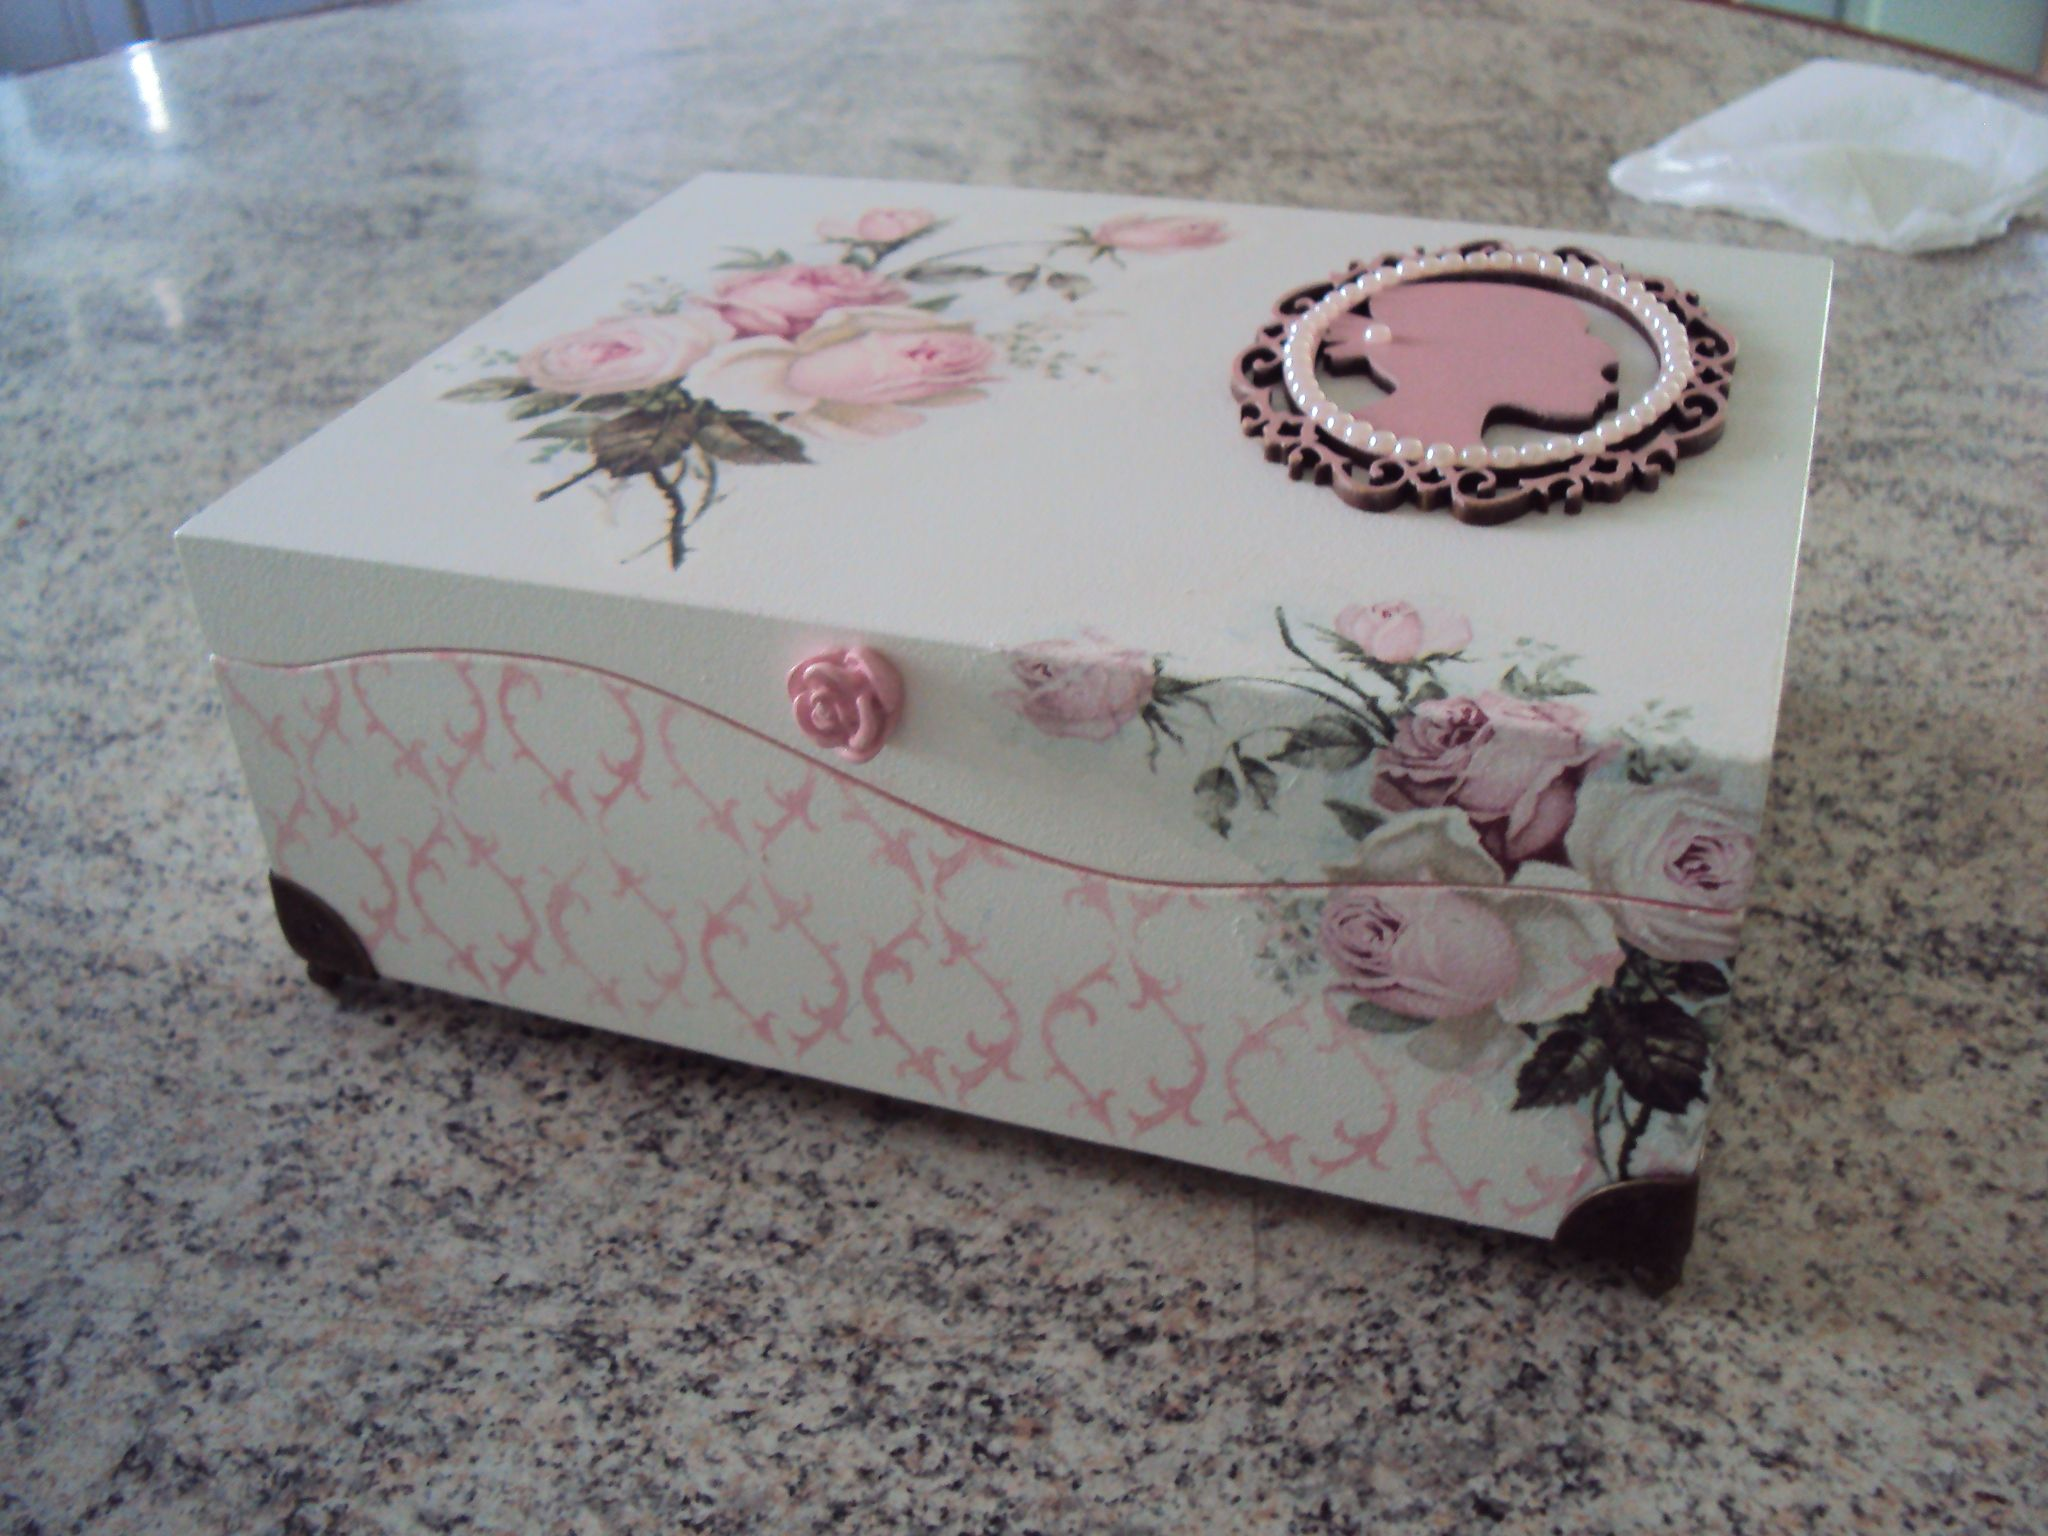 Wedding Gift Box Malta : ems decoupage crafts mdf box painting projects decorative boxes wood ...